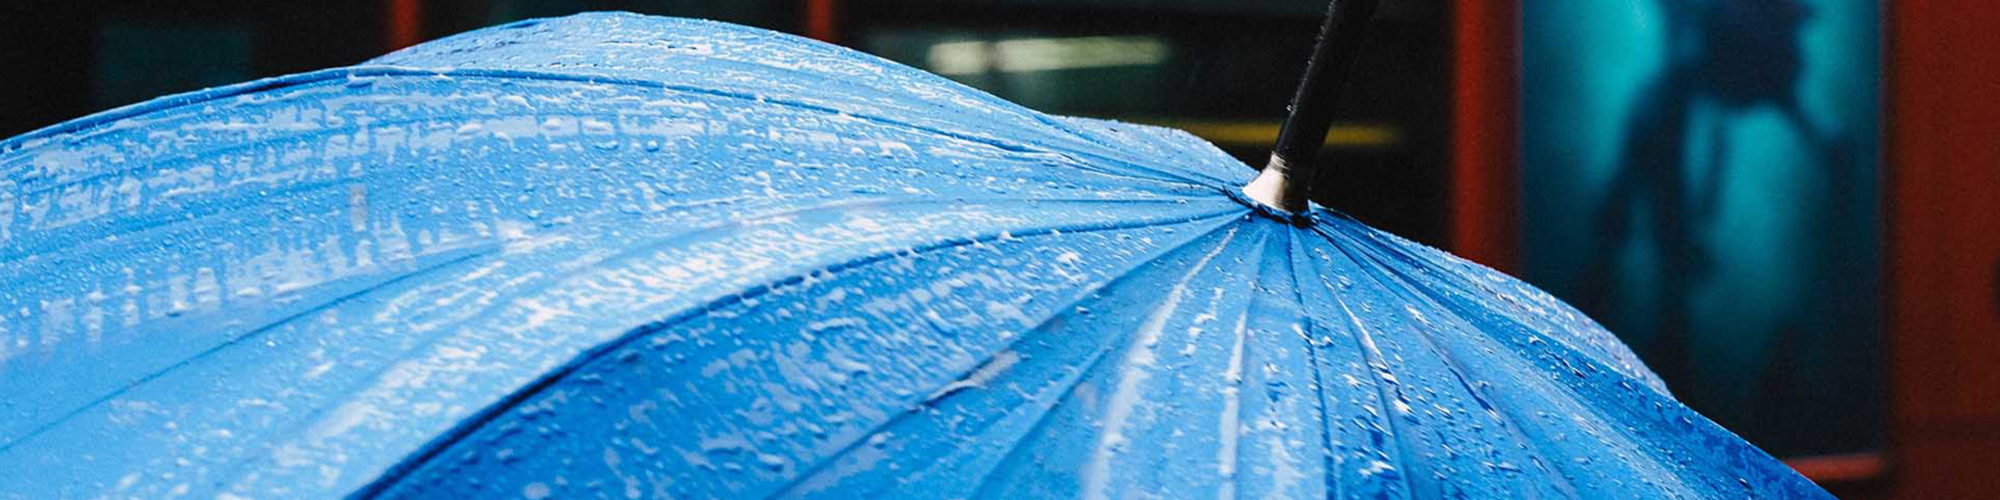 Picture of a wet blue umbrella, valantic Case Study Siemens AG